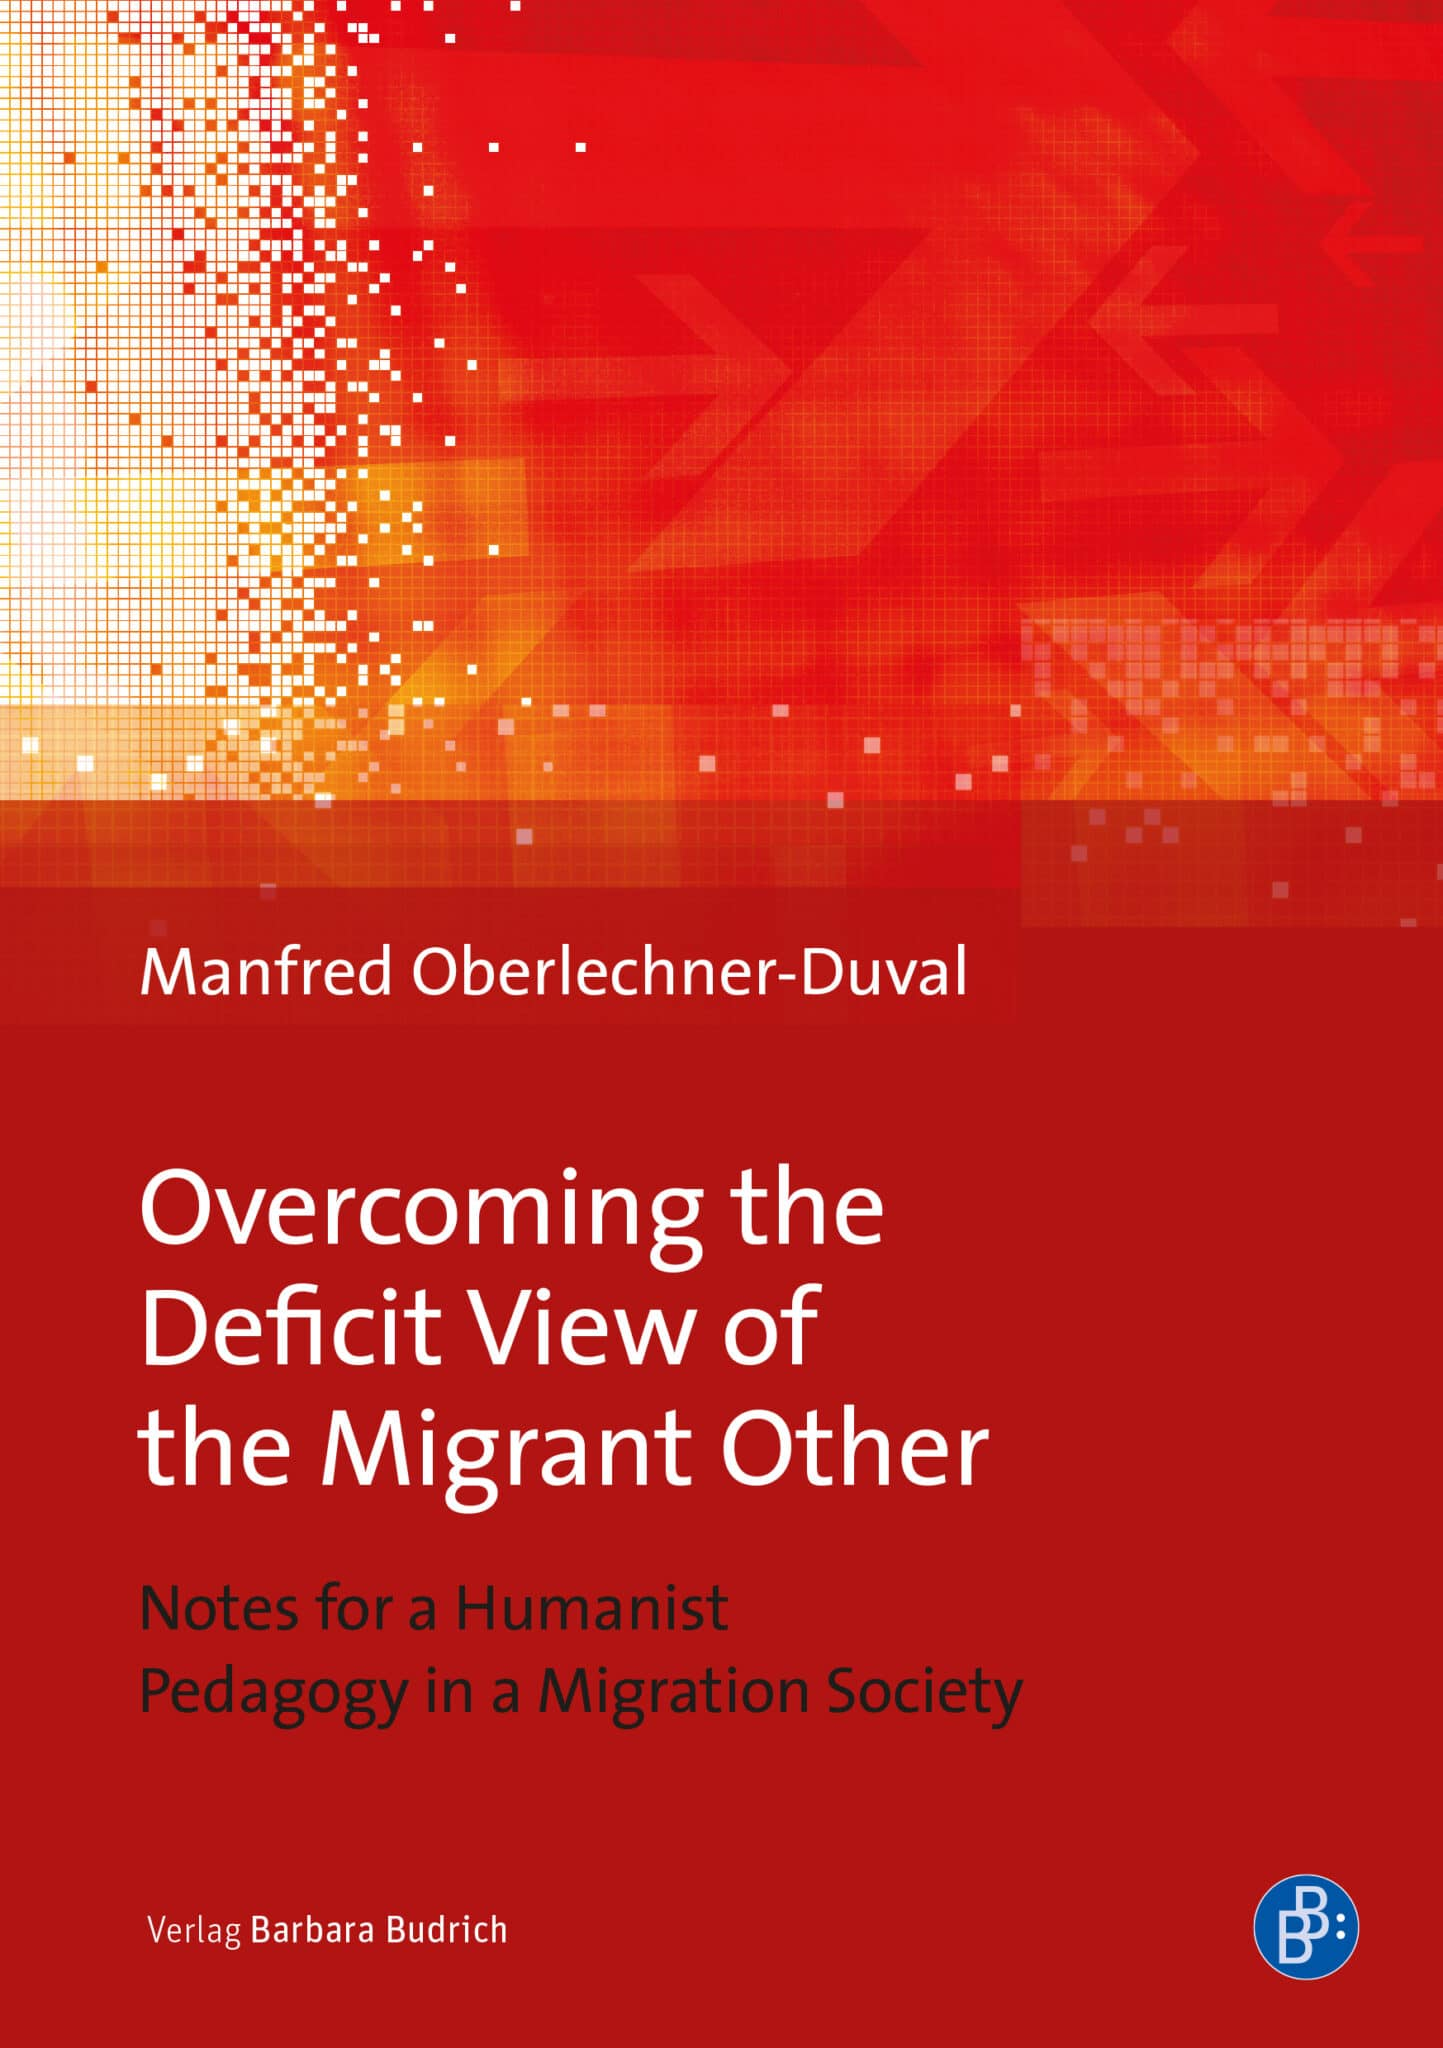 Oberlechner-Duval: Overcoming the Deficit View of the Migrant Other. Oberlechner-Duval, Overcoming the Deficit View. ISBN: 978-3-8474-2481-9. Verlag Barbara Budrich.